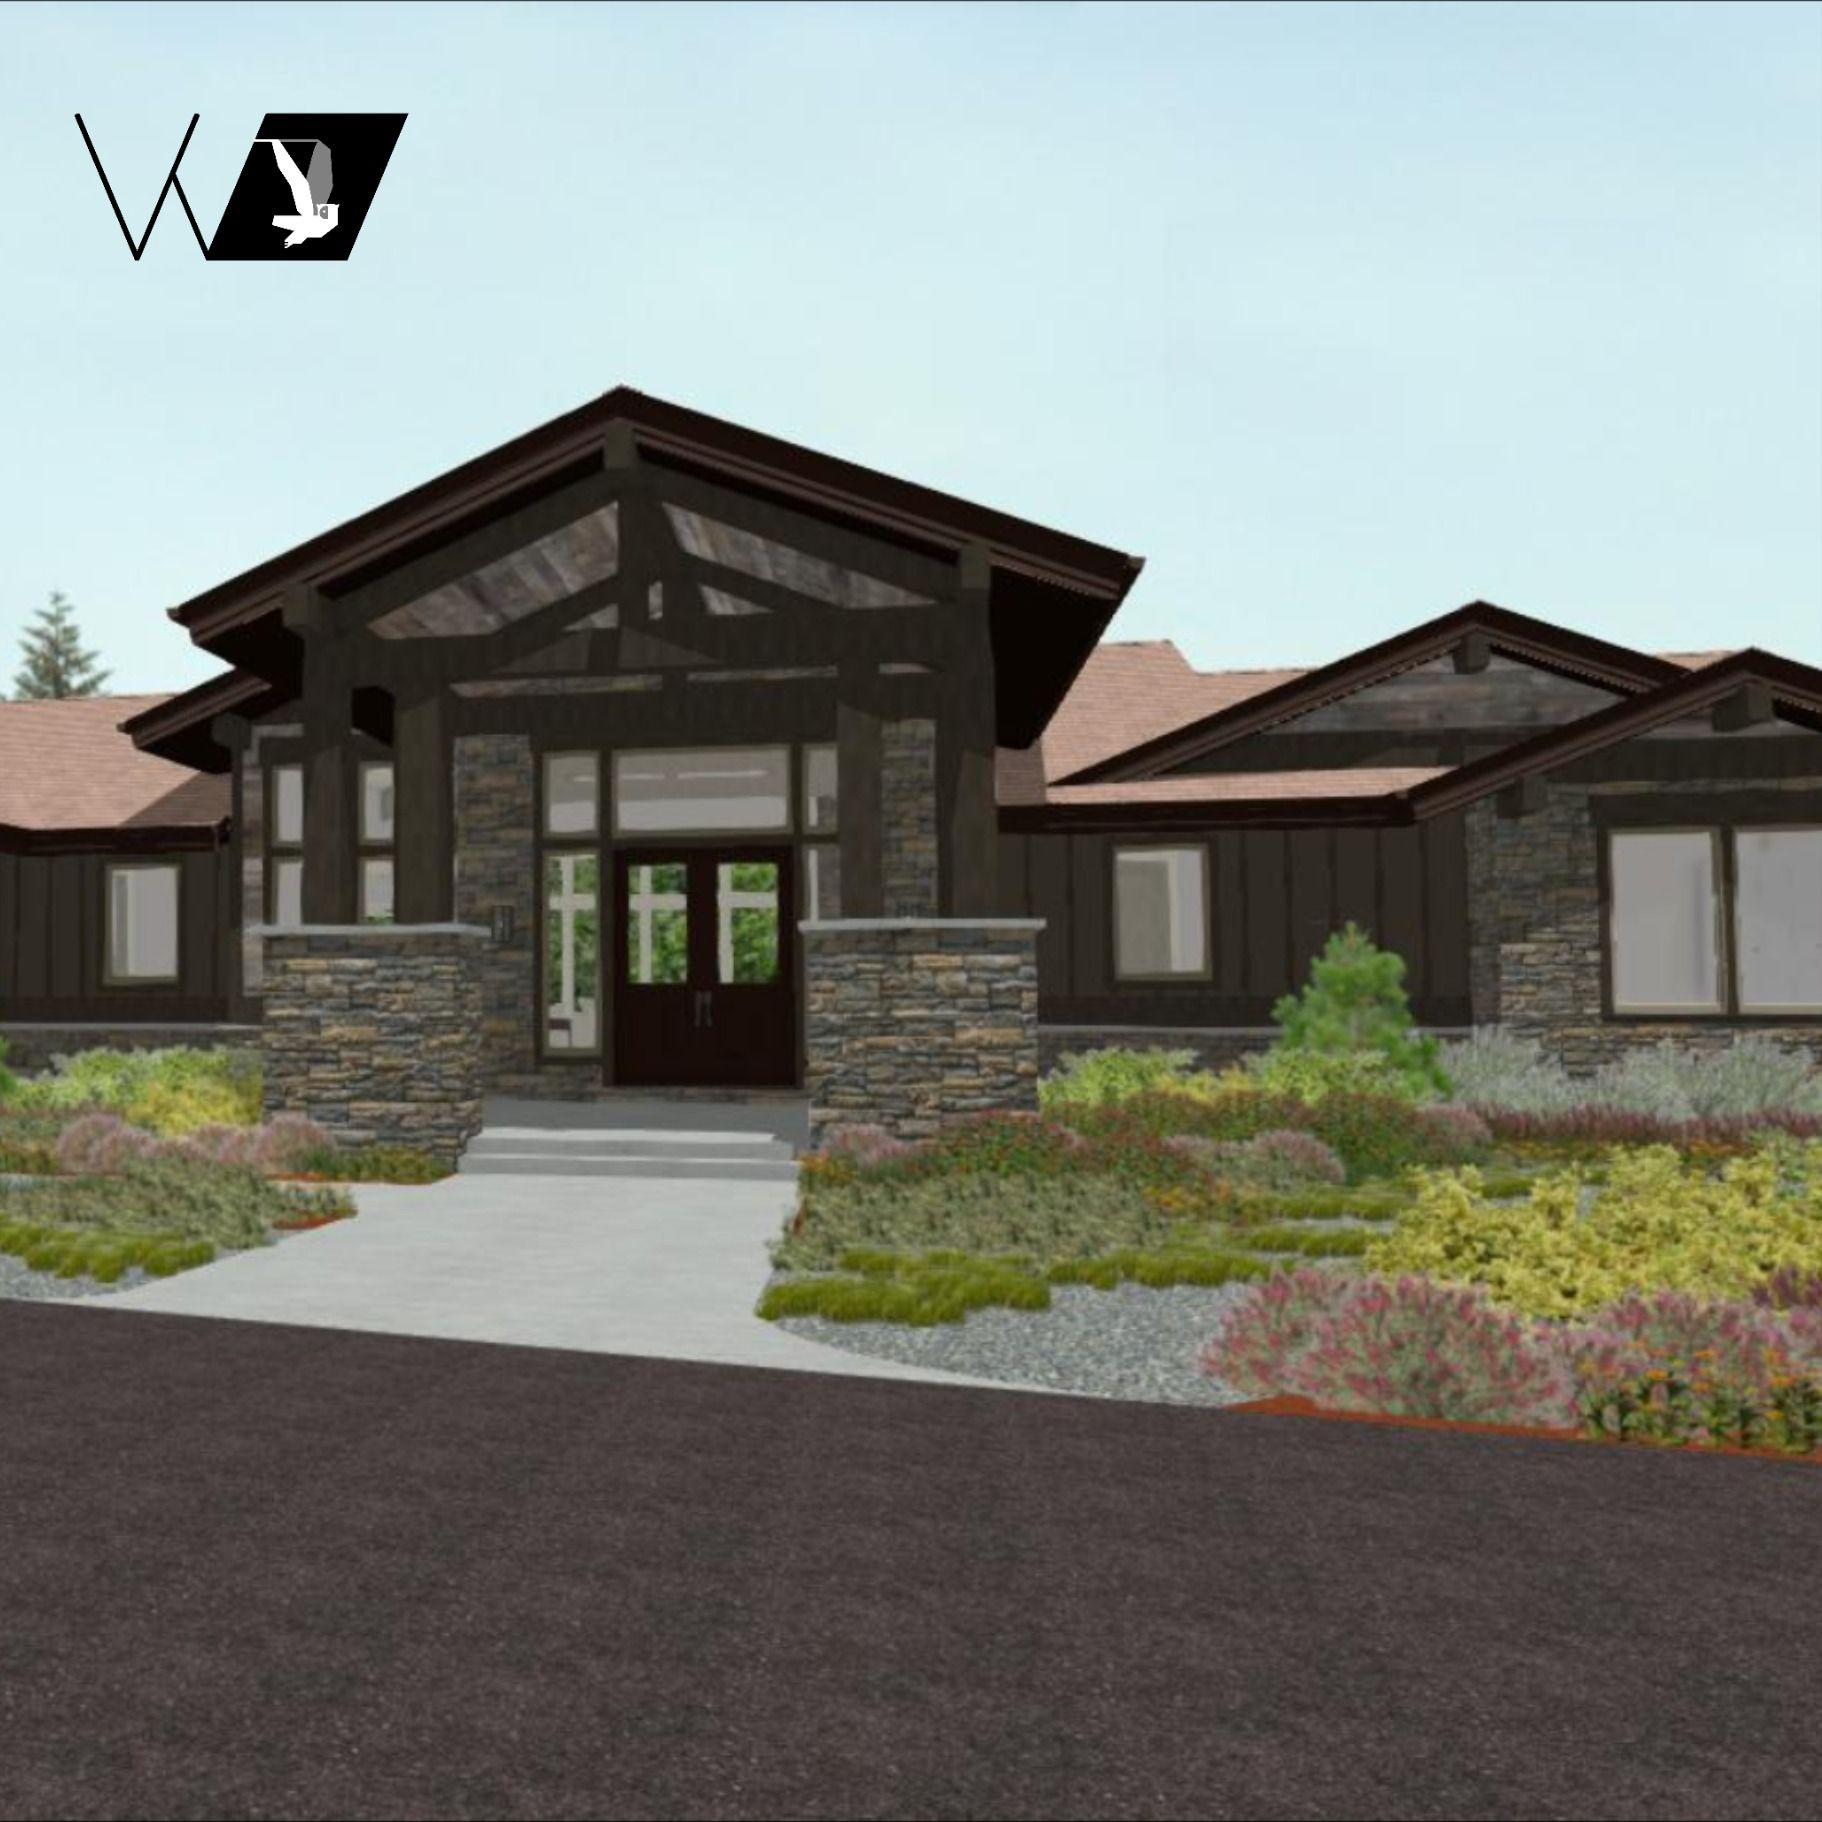 19 Stunning Small Luxury Home Design For You Prairie Style Houses Small Luxury Homes Luxury House Designs